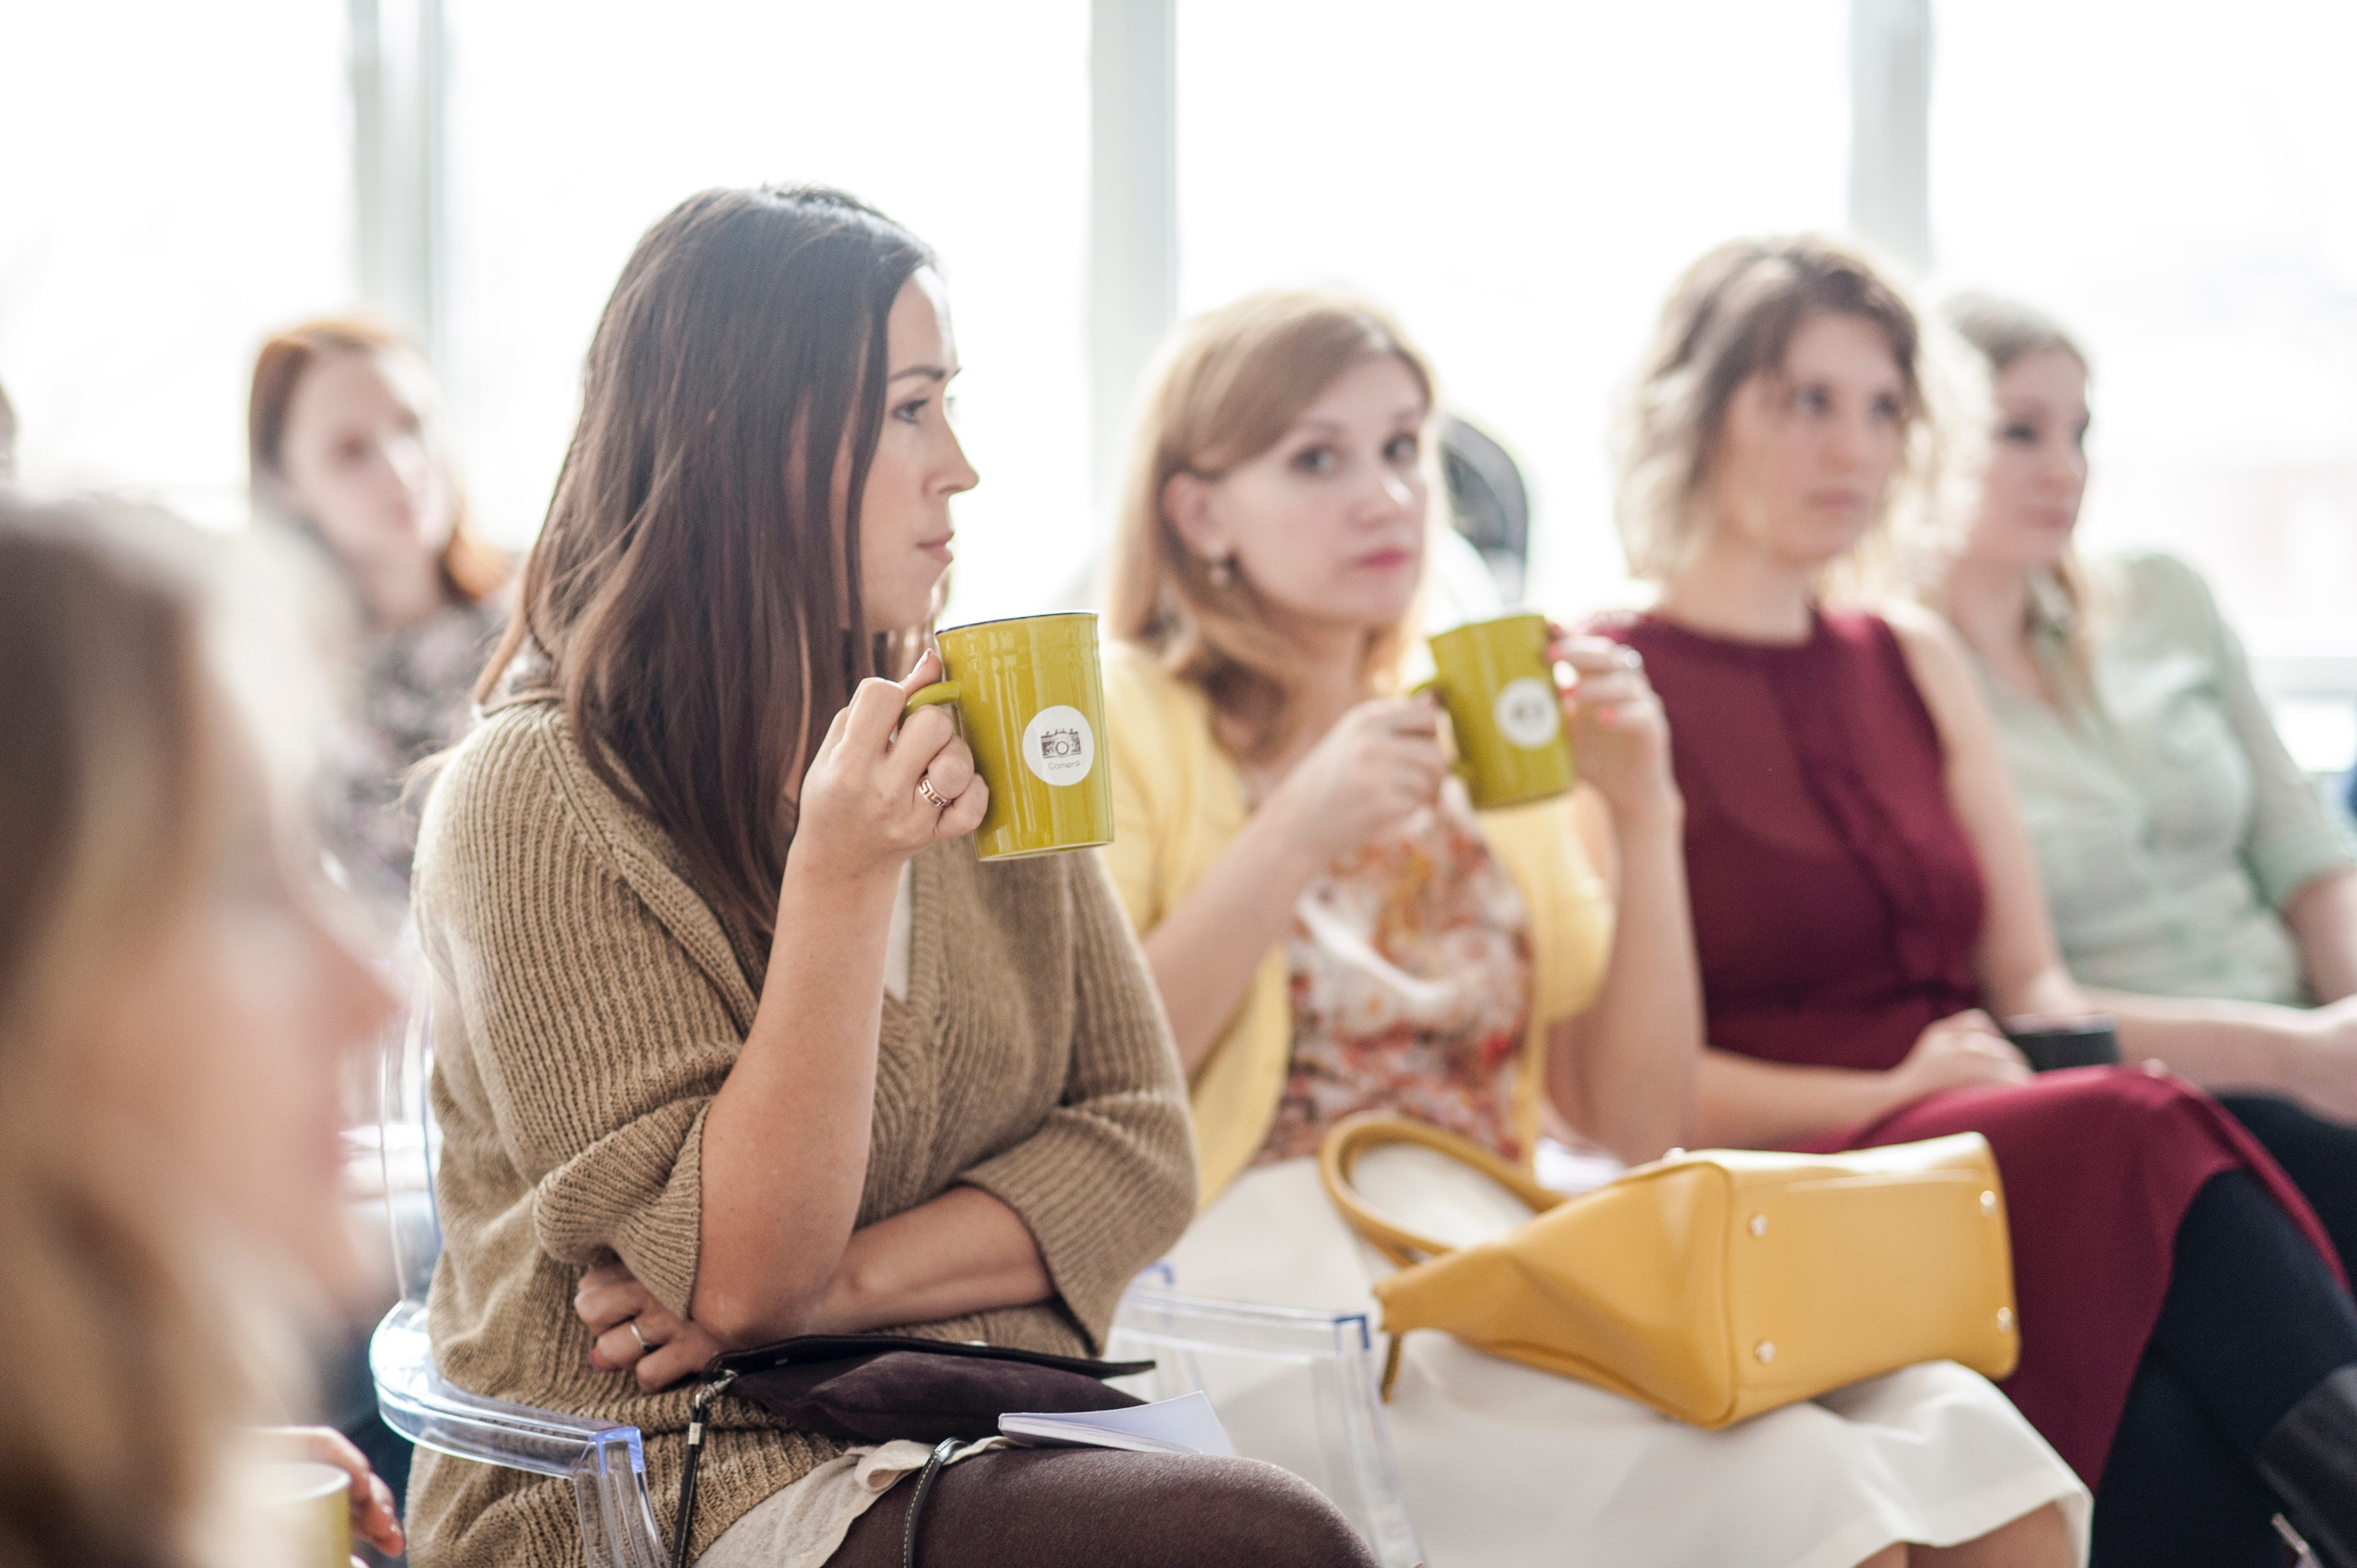 Woman Wearing Brown Corduroy Coat Holding Mug While Sitting on Chair, Adult, People, Wear, Togetherness, HQ Photo